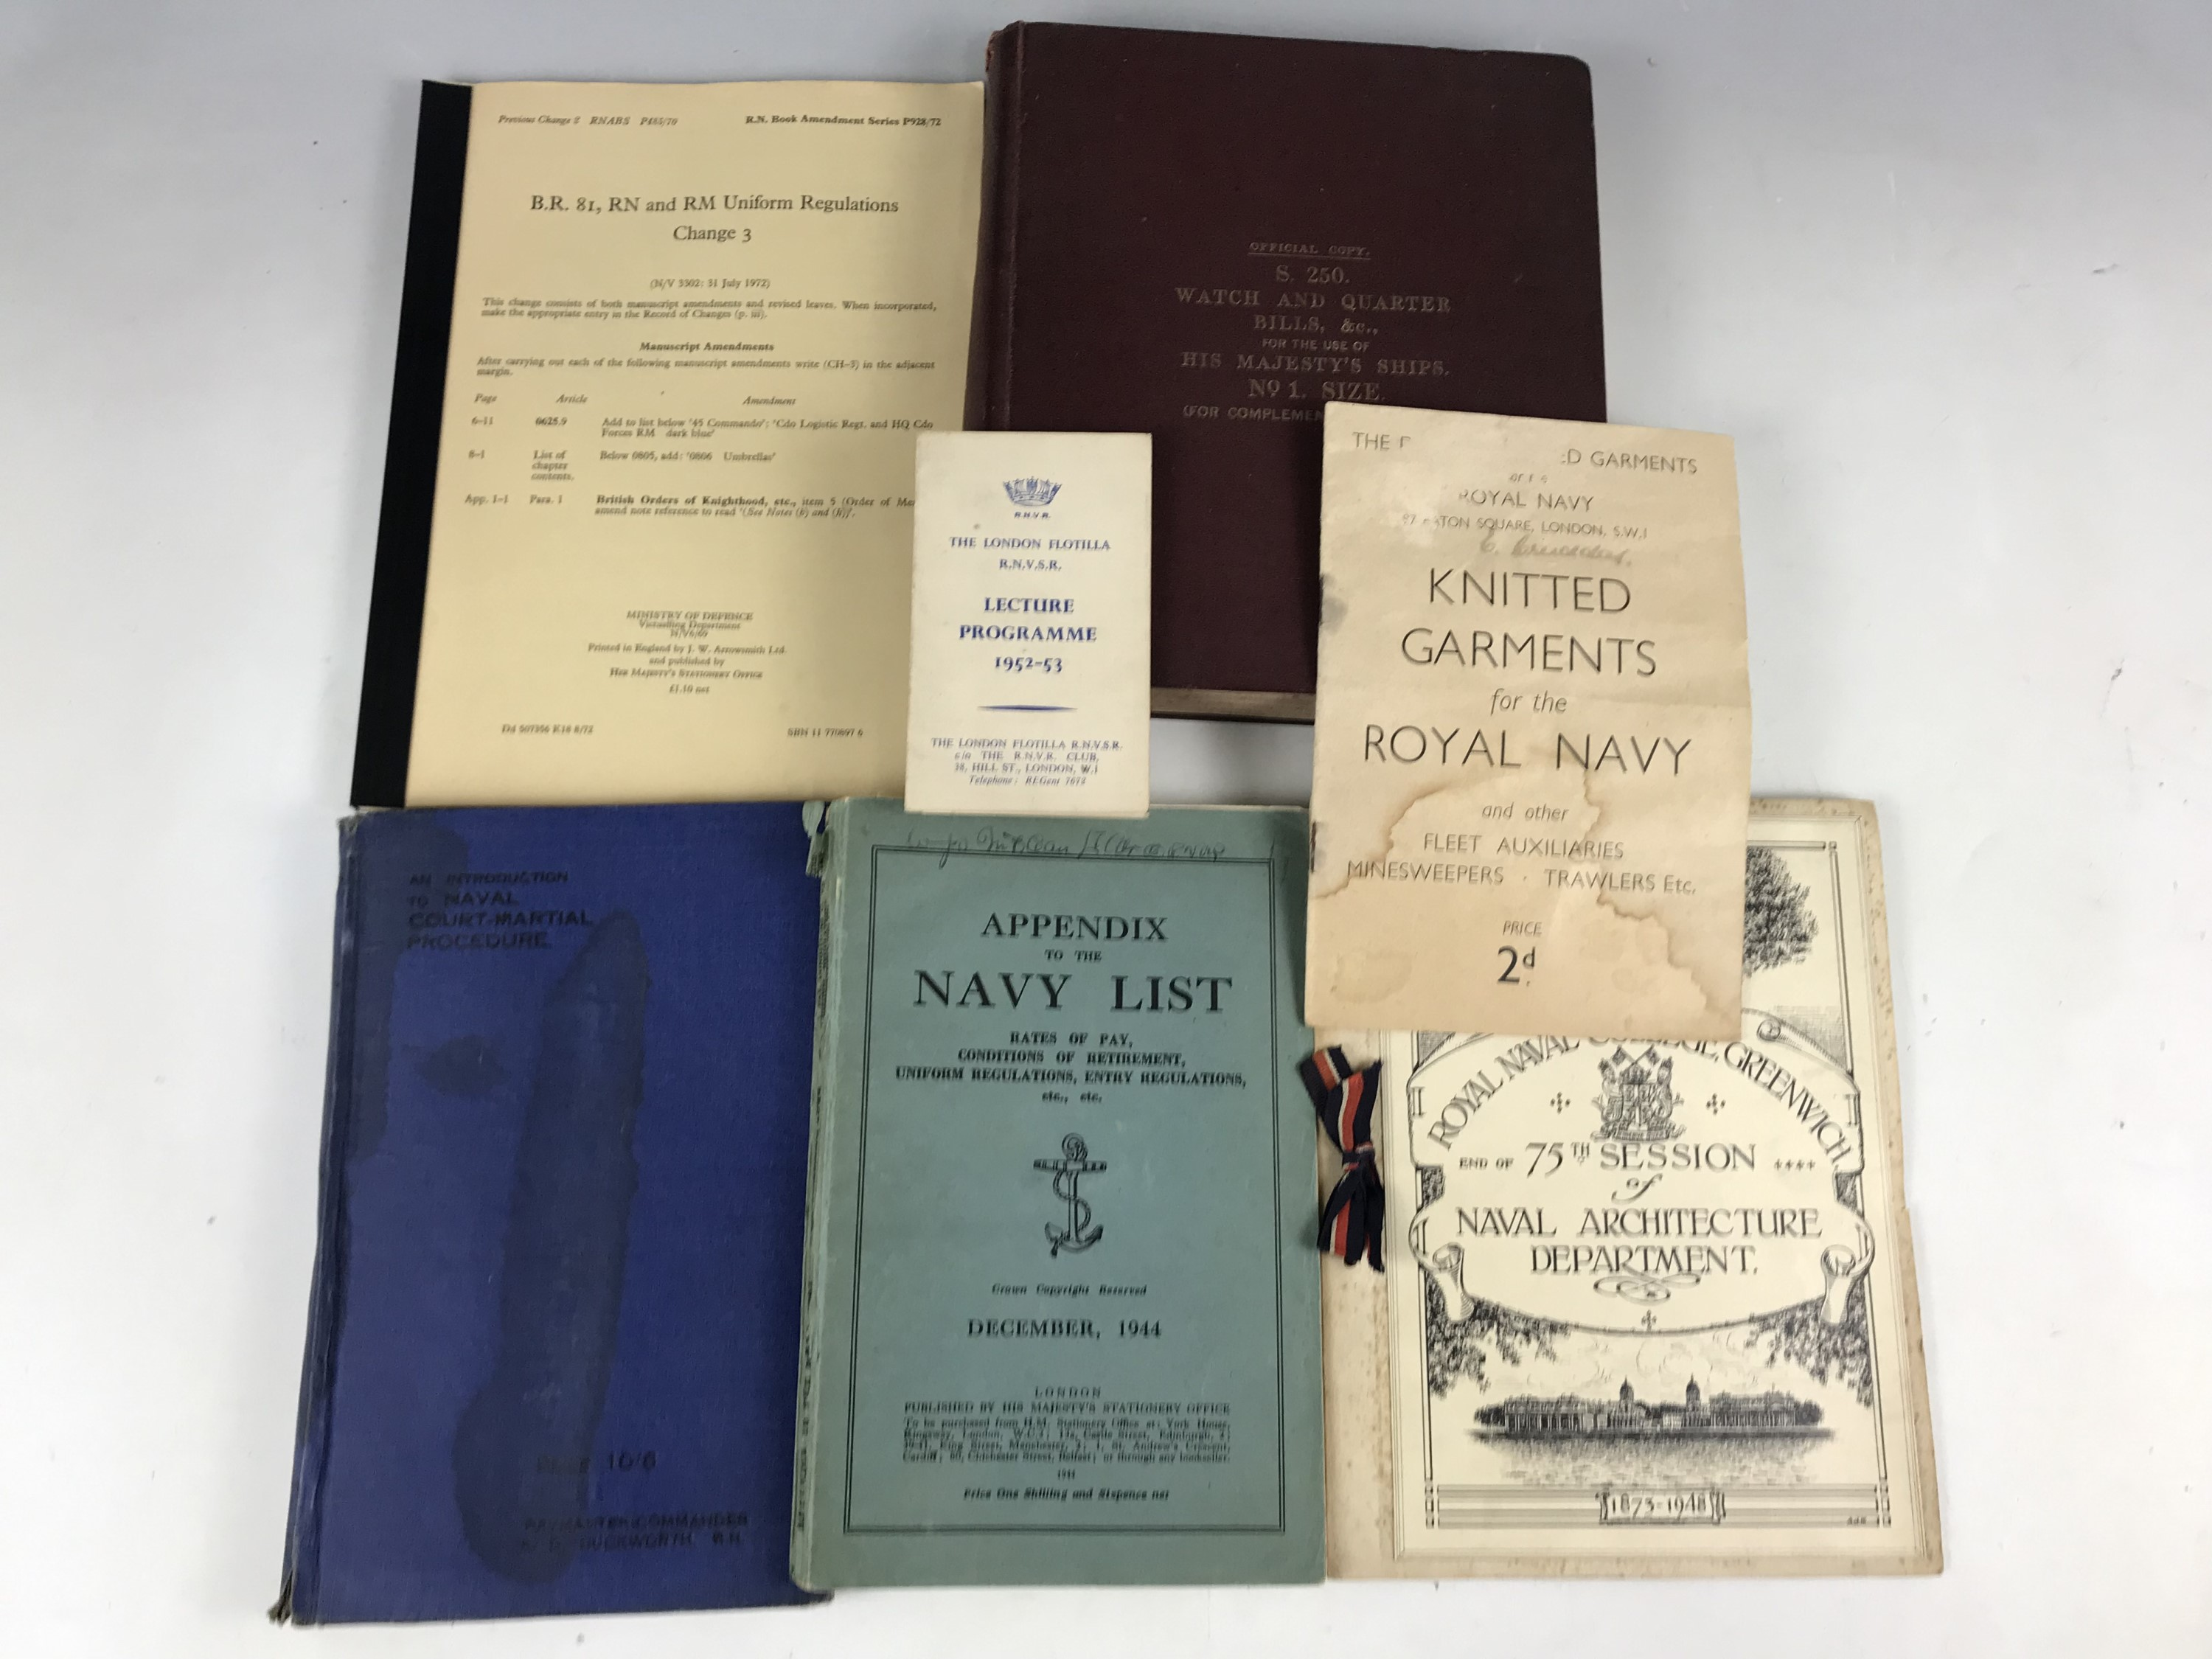 Lot 30 - A quantity of Royal Navy official and other publications including a Watch and Quarter Bills etc